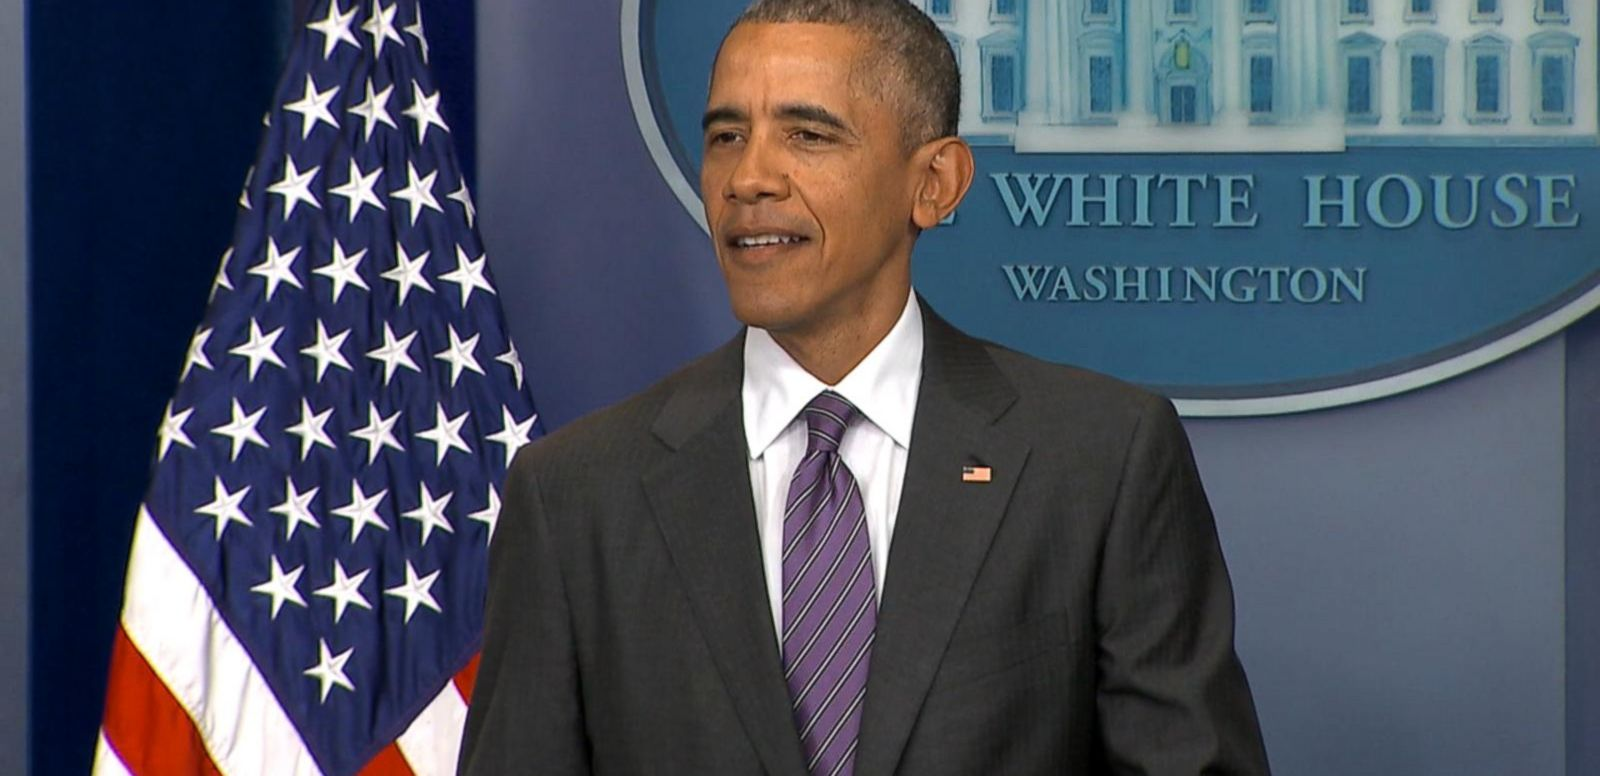 President Obama interrupted the briefing to talk about Pay As You Earn.